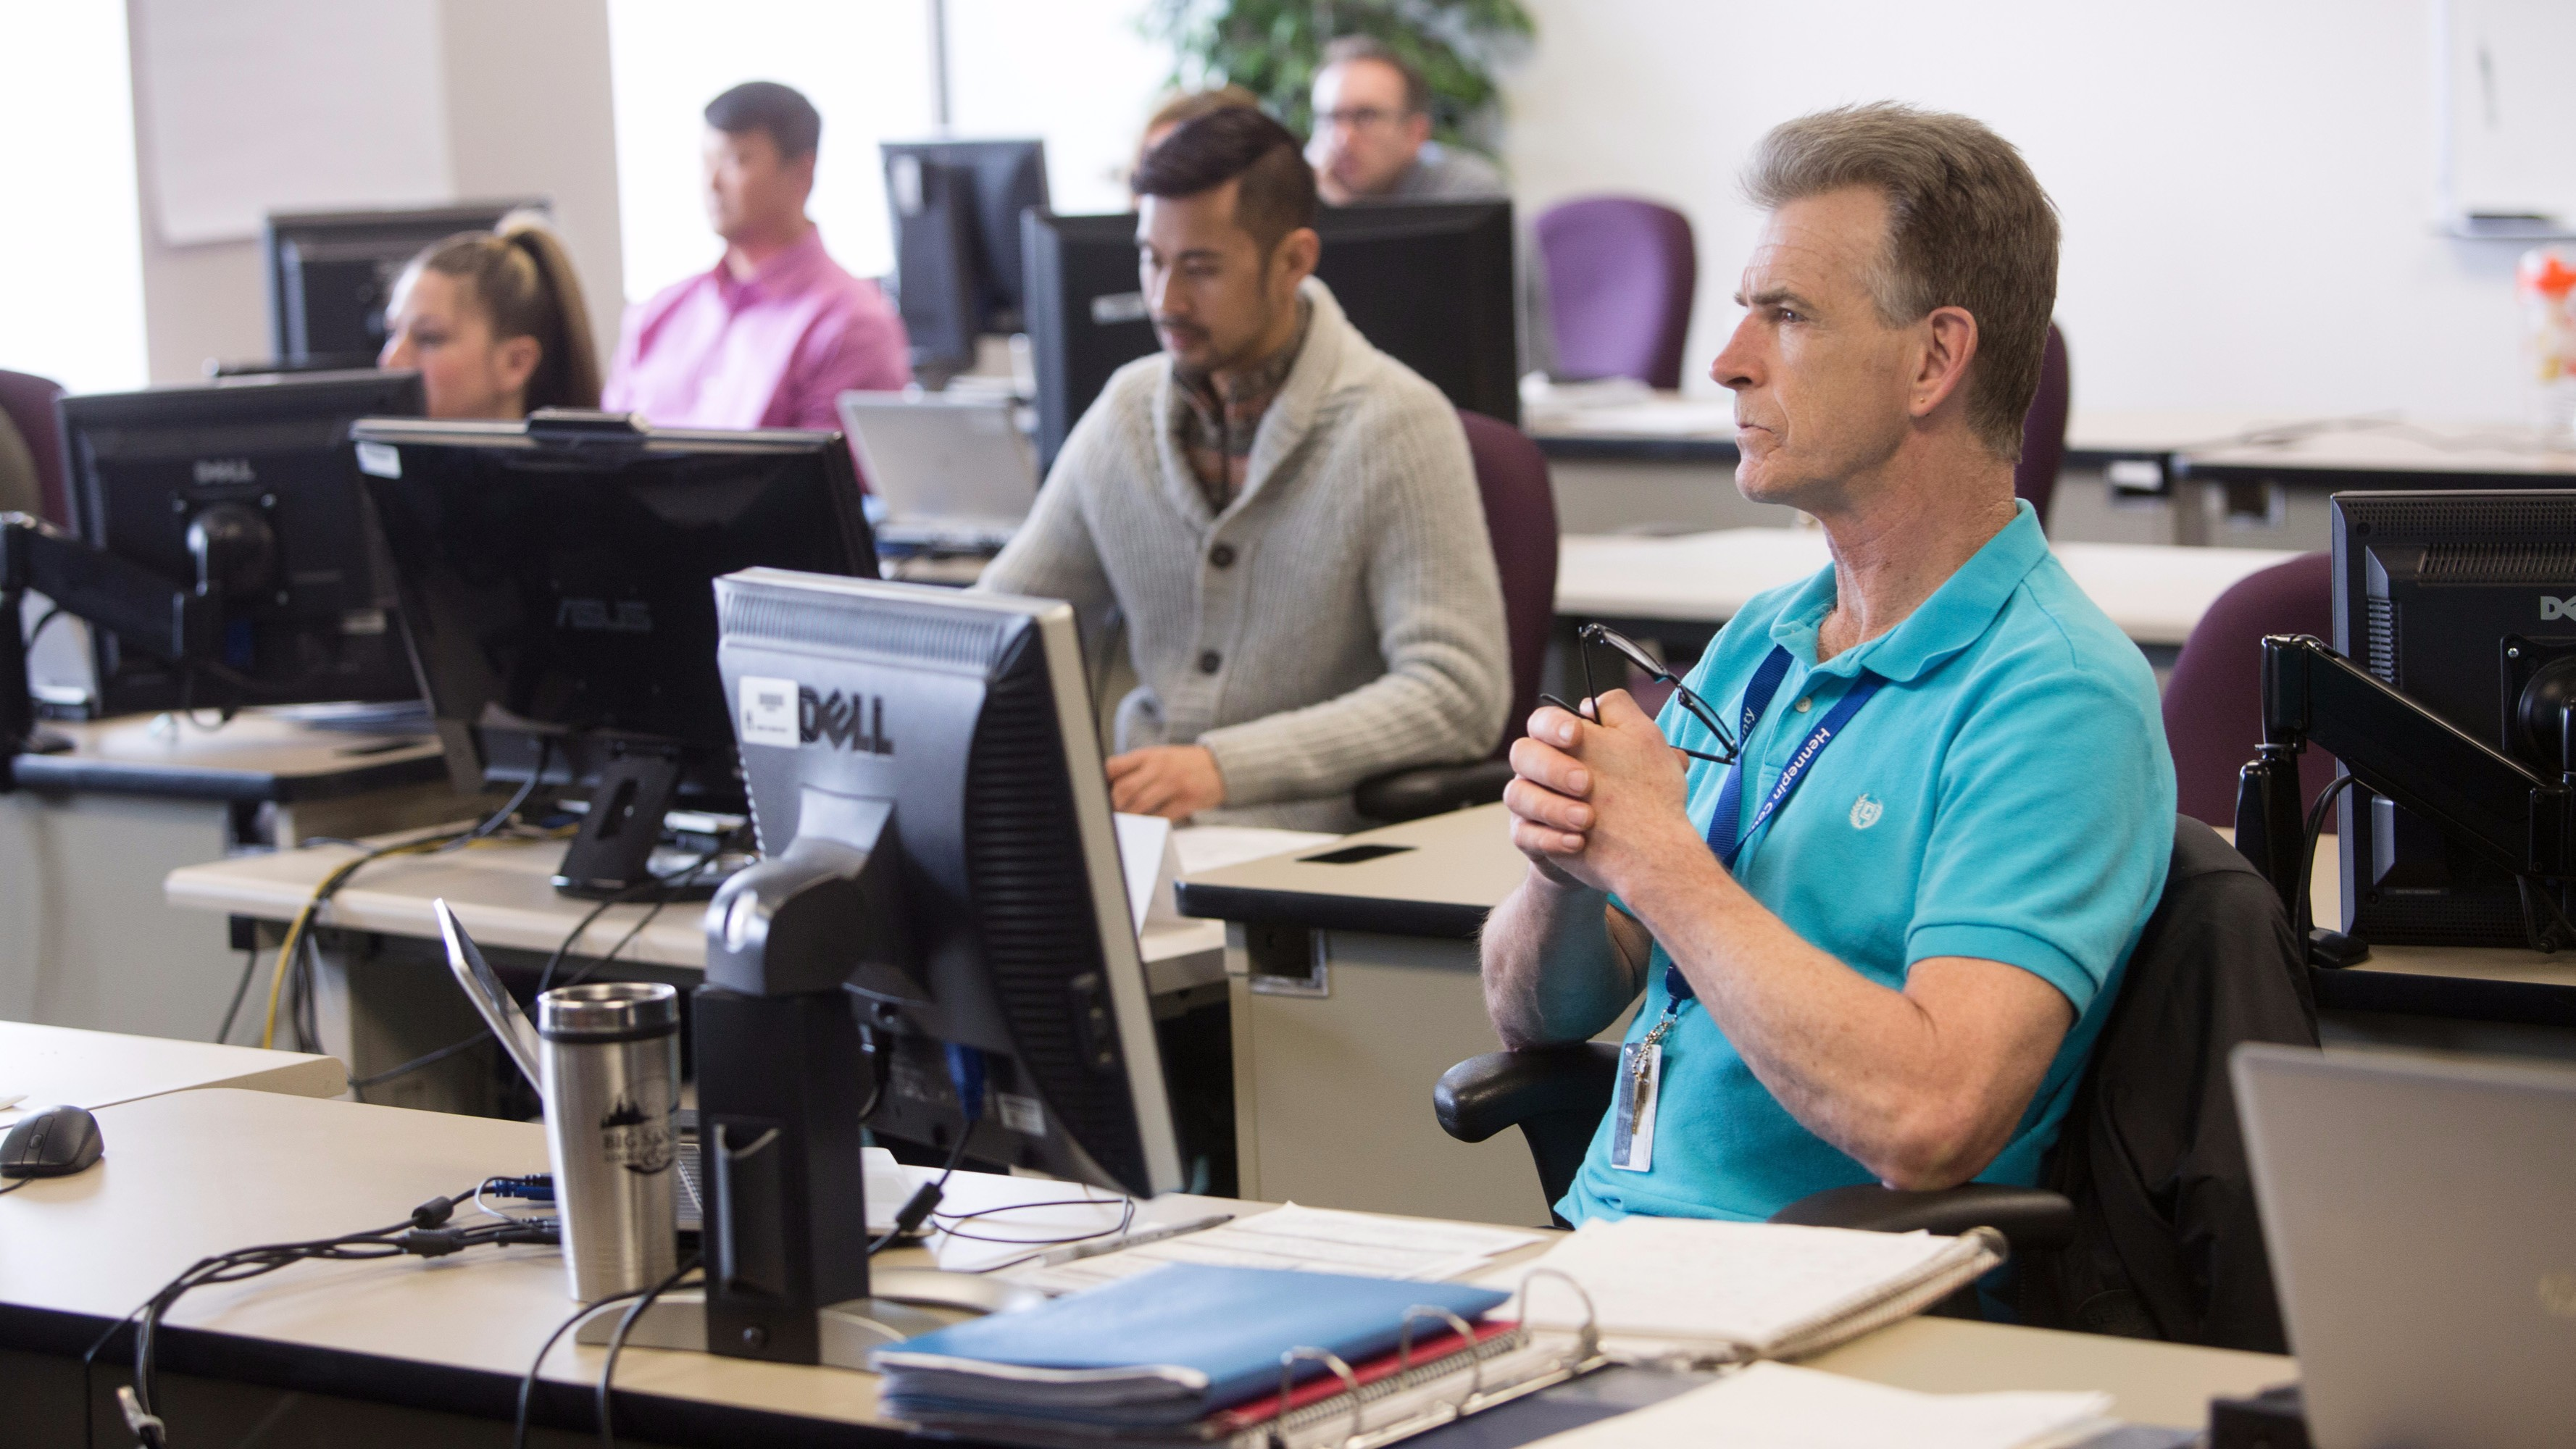 """Participants in Hennepin County, Minn.'s Career Connections program learn the """"hard"""" and """"soft"""" skills needed to prepare them for county jobs. Photo courtesy of Hennepin County, Minn."""